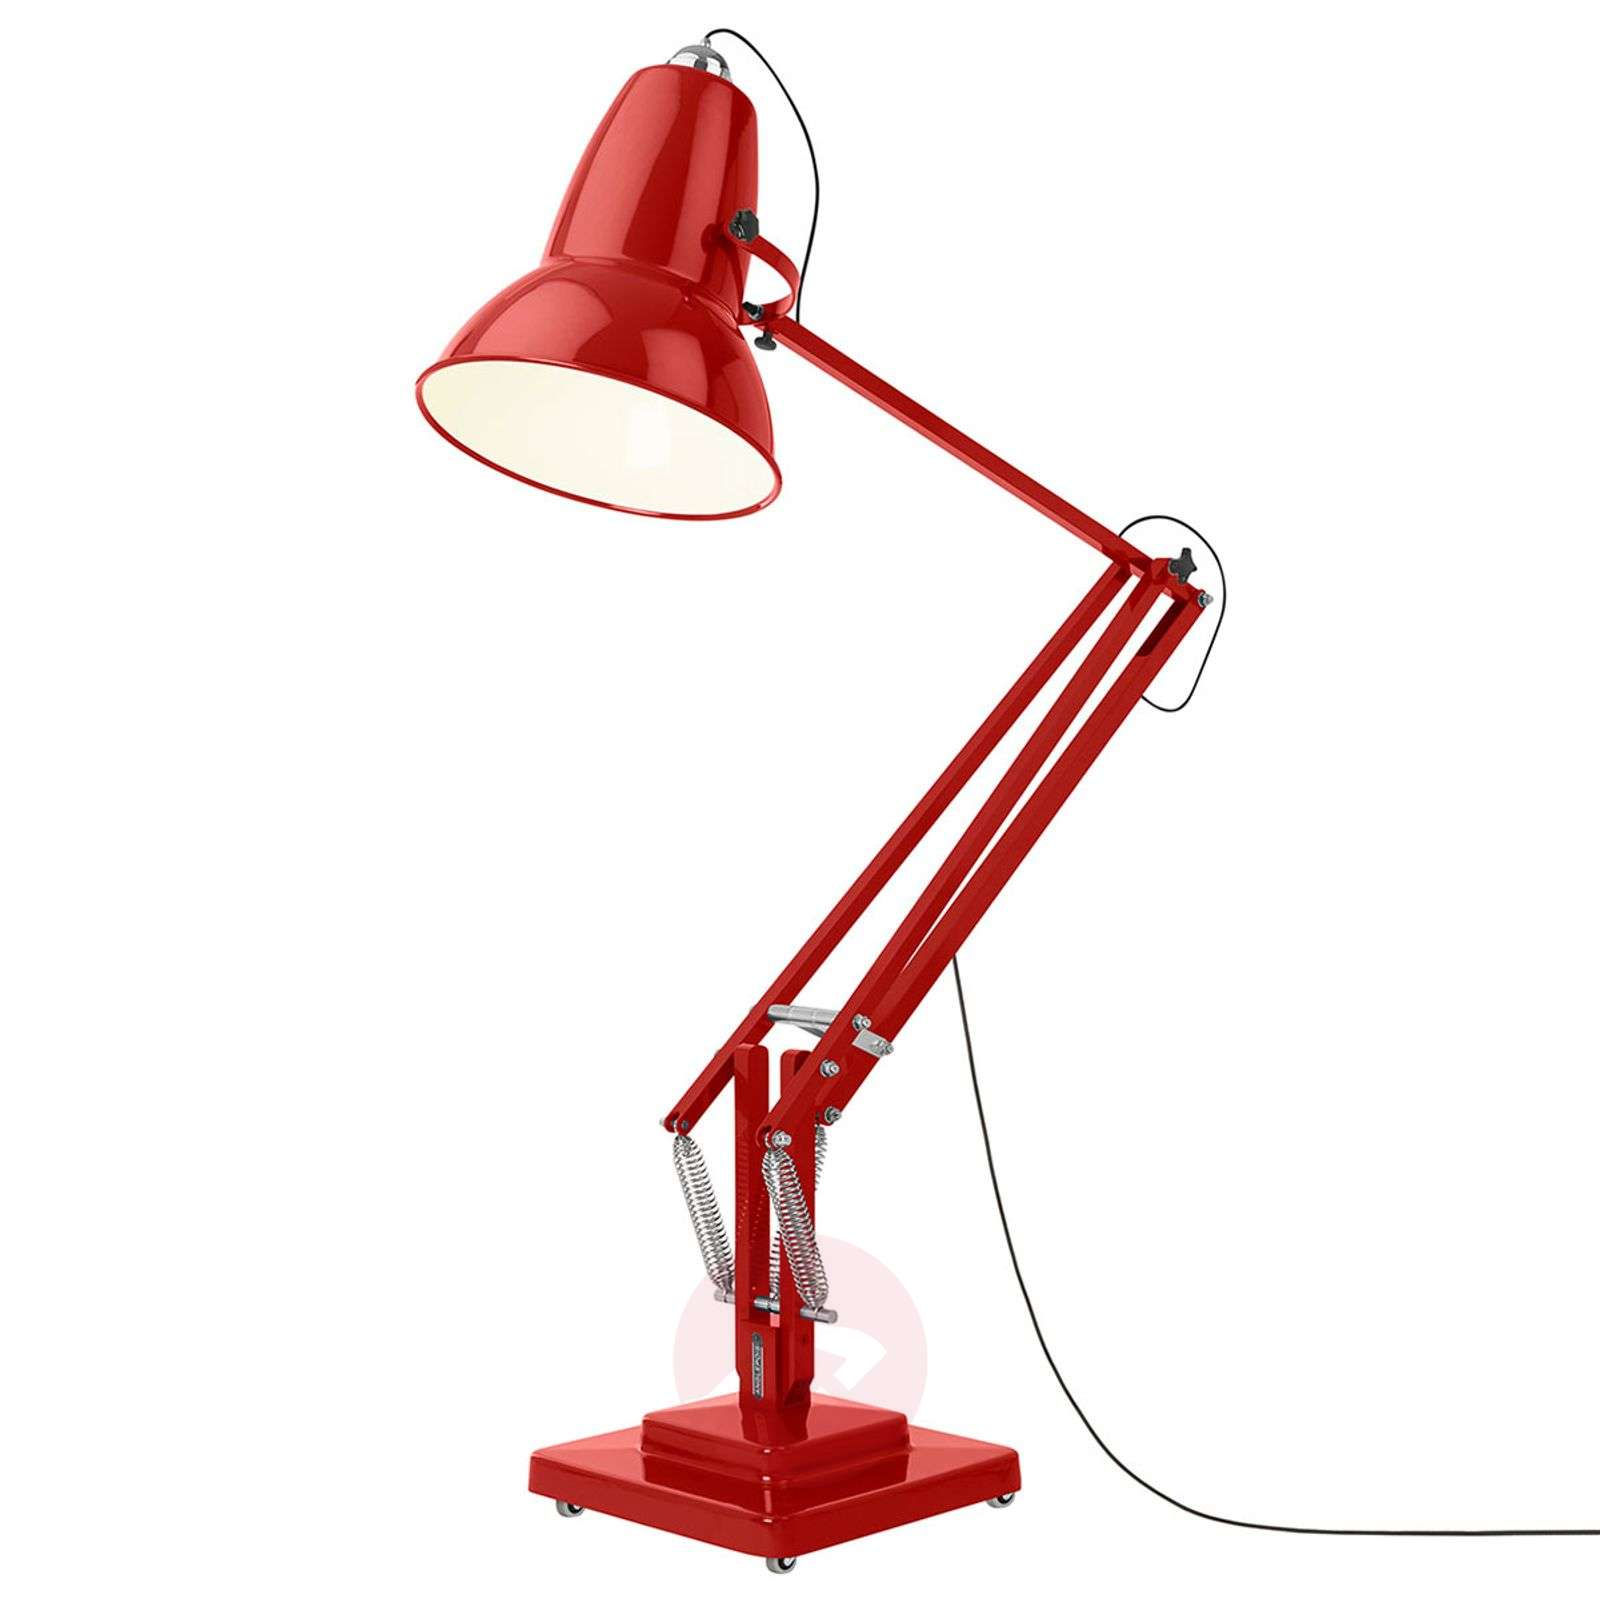 Anglepoise Original 1227 Giant lampadaire rouge